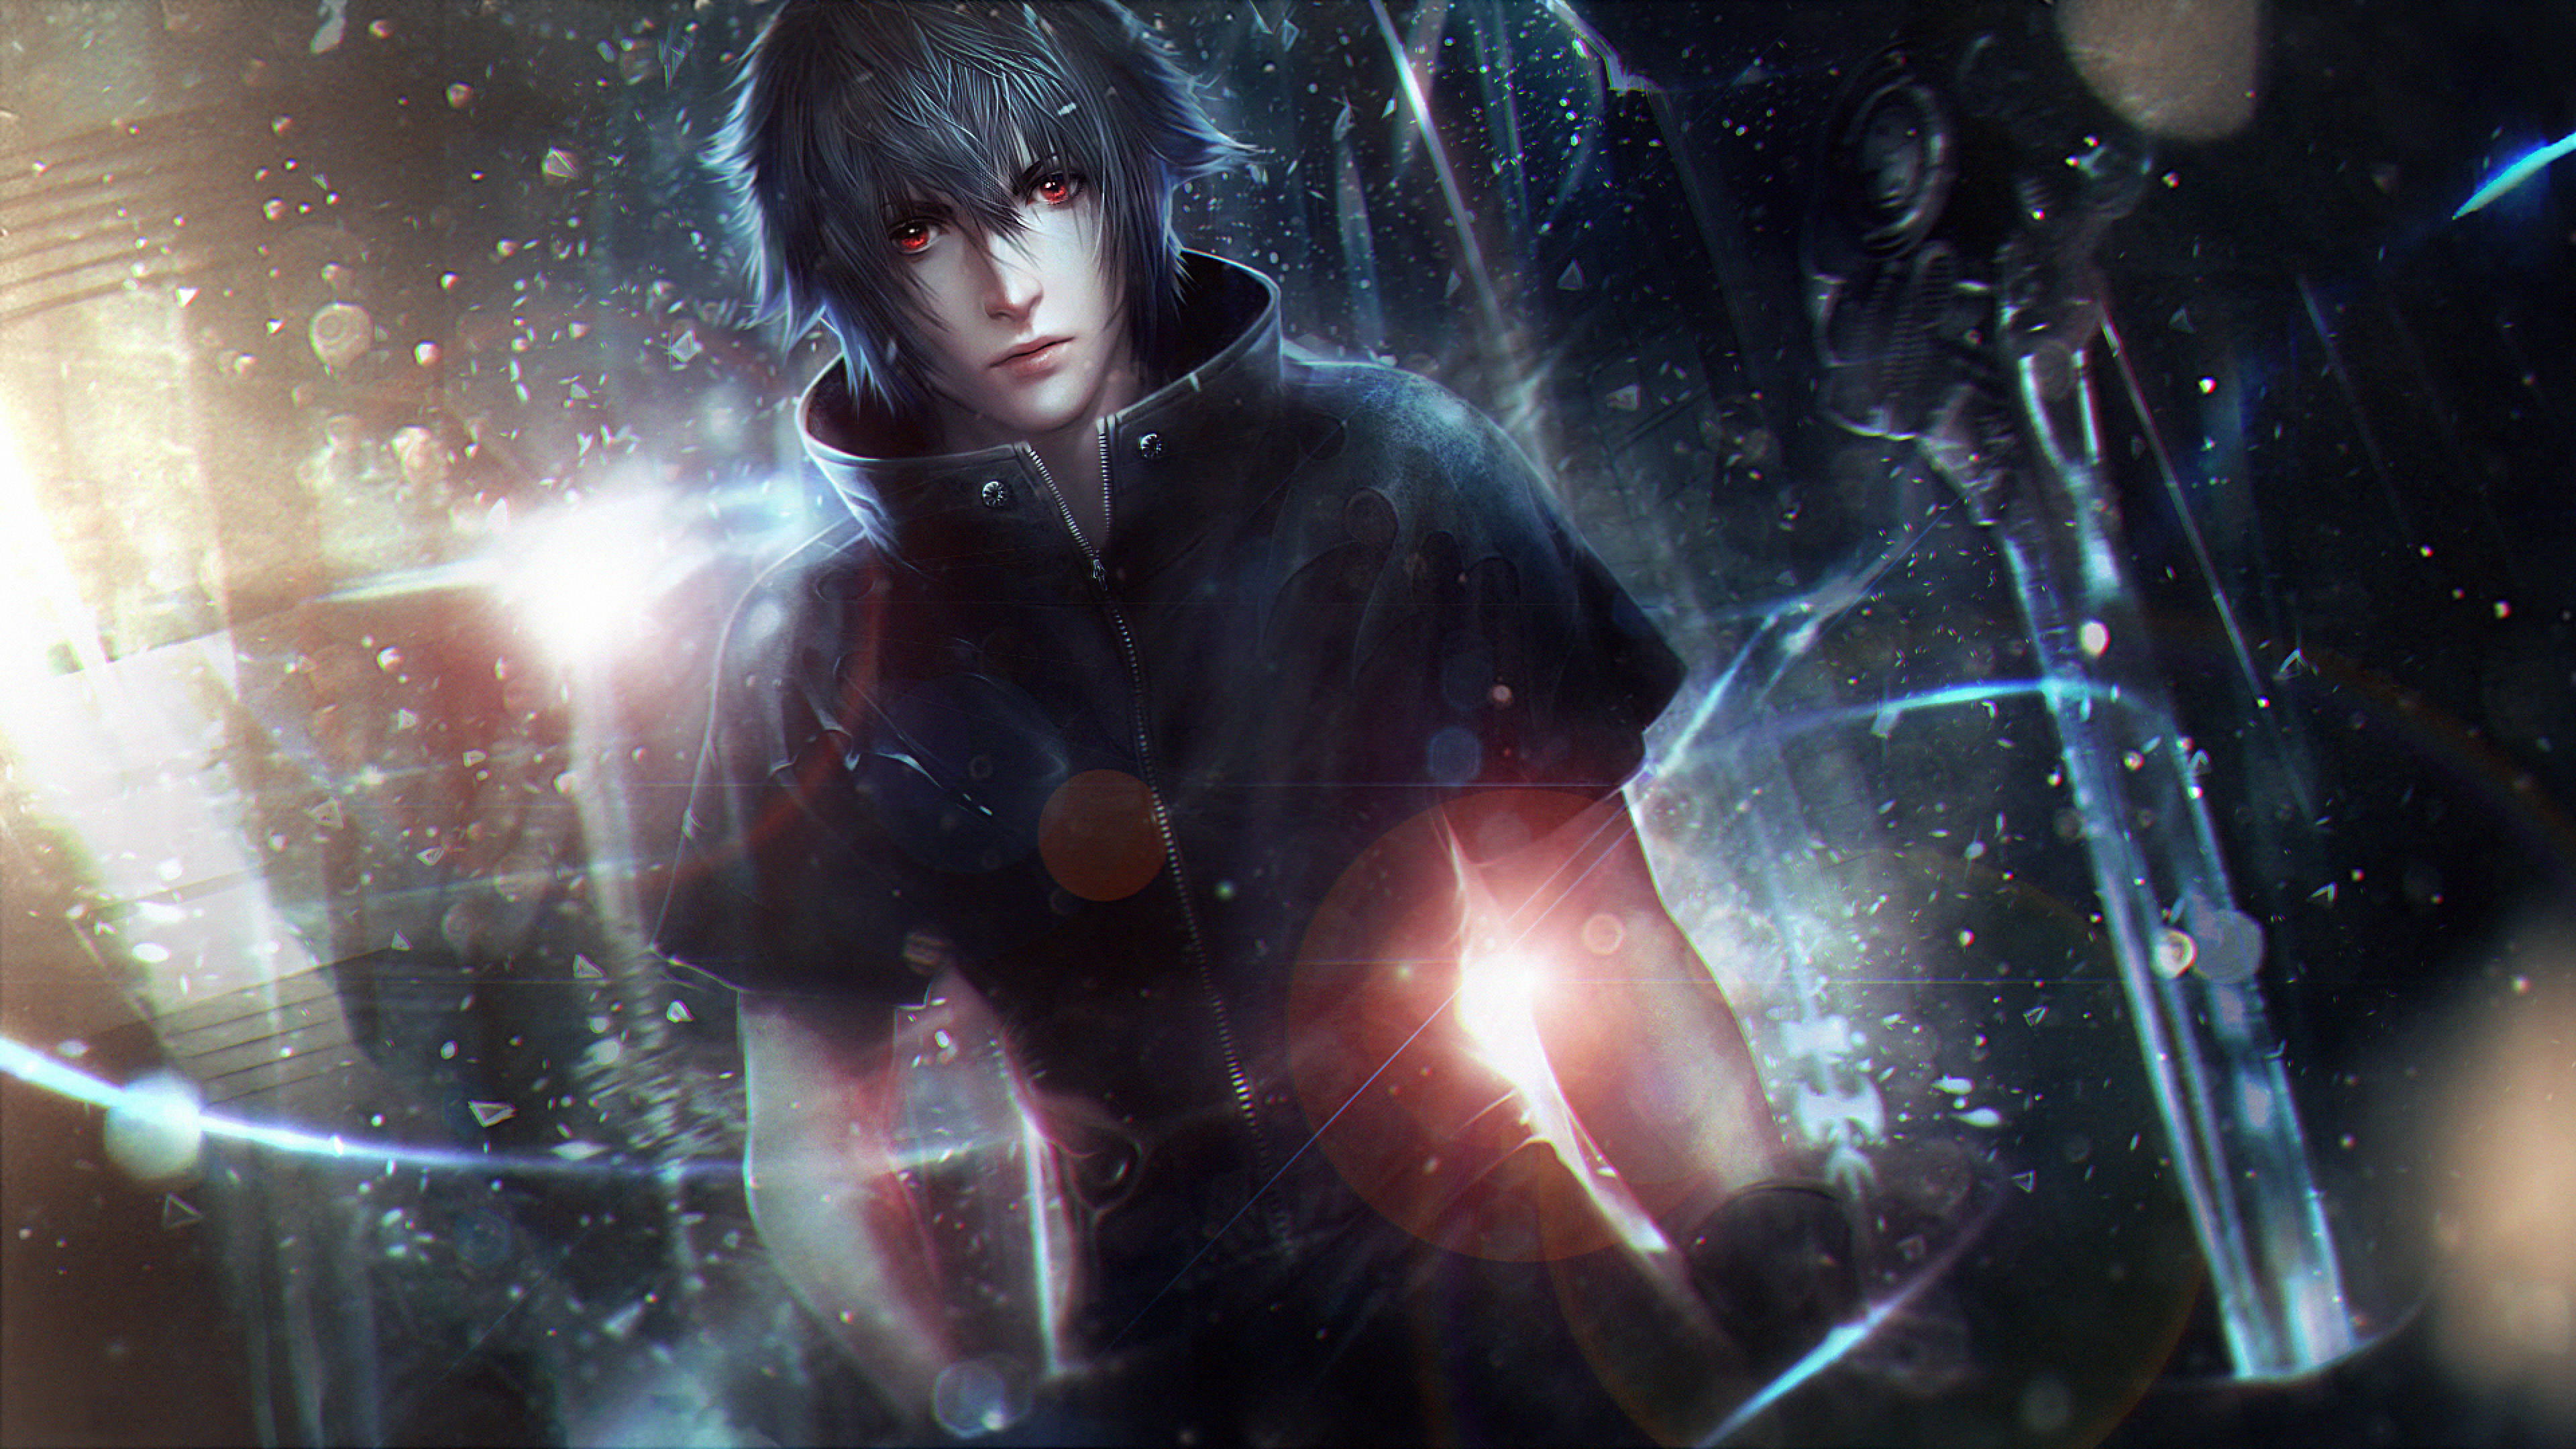 Final Fantasy Xv 4k Wallpapers: Noctis Lucis Caelum Final Fantasy XV Artwork, HD Games, 4k